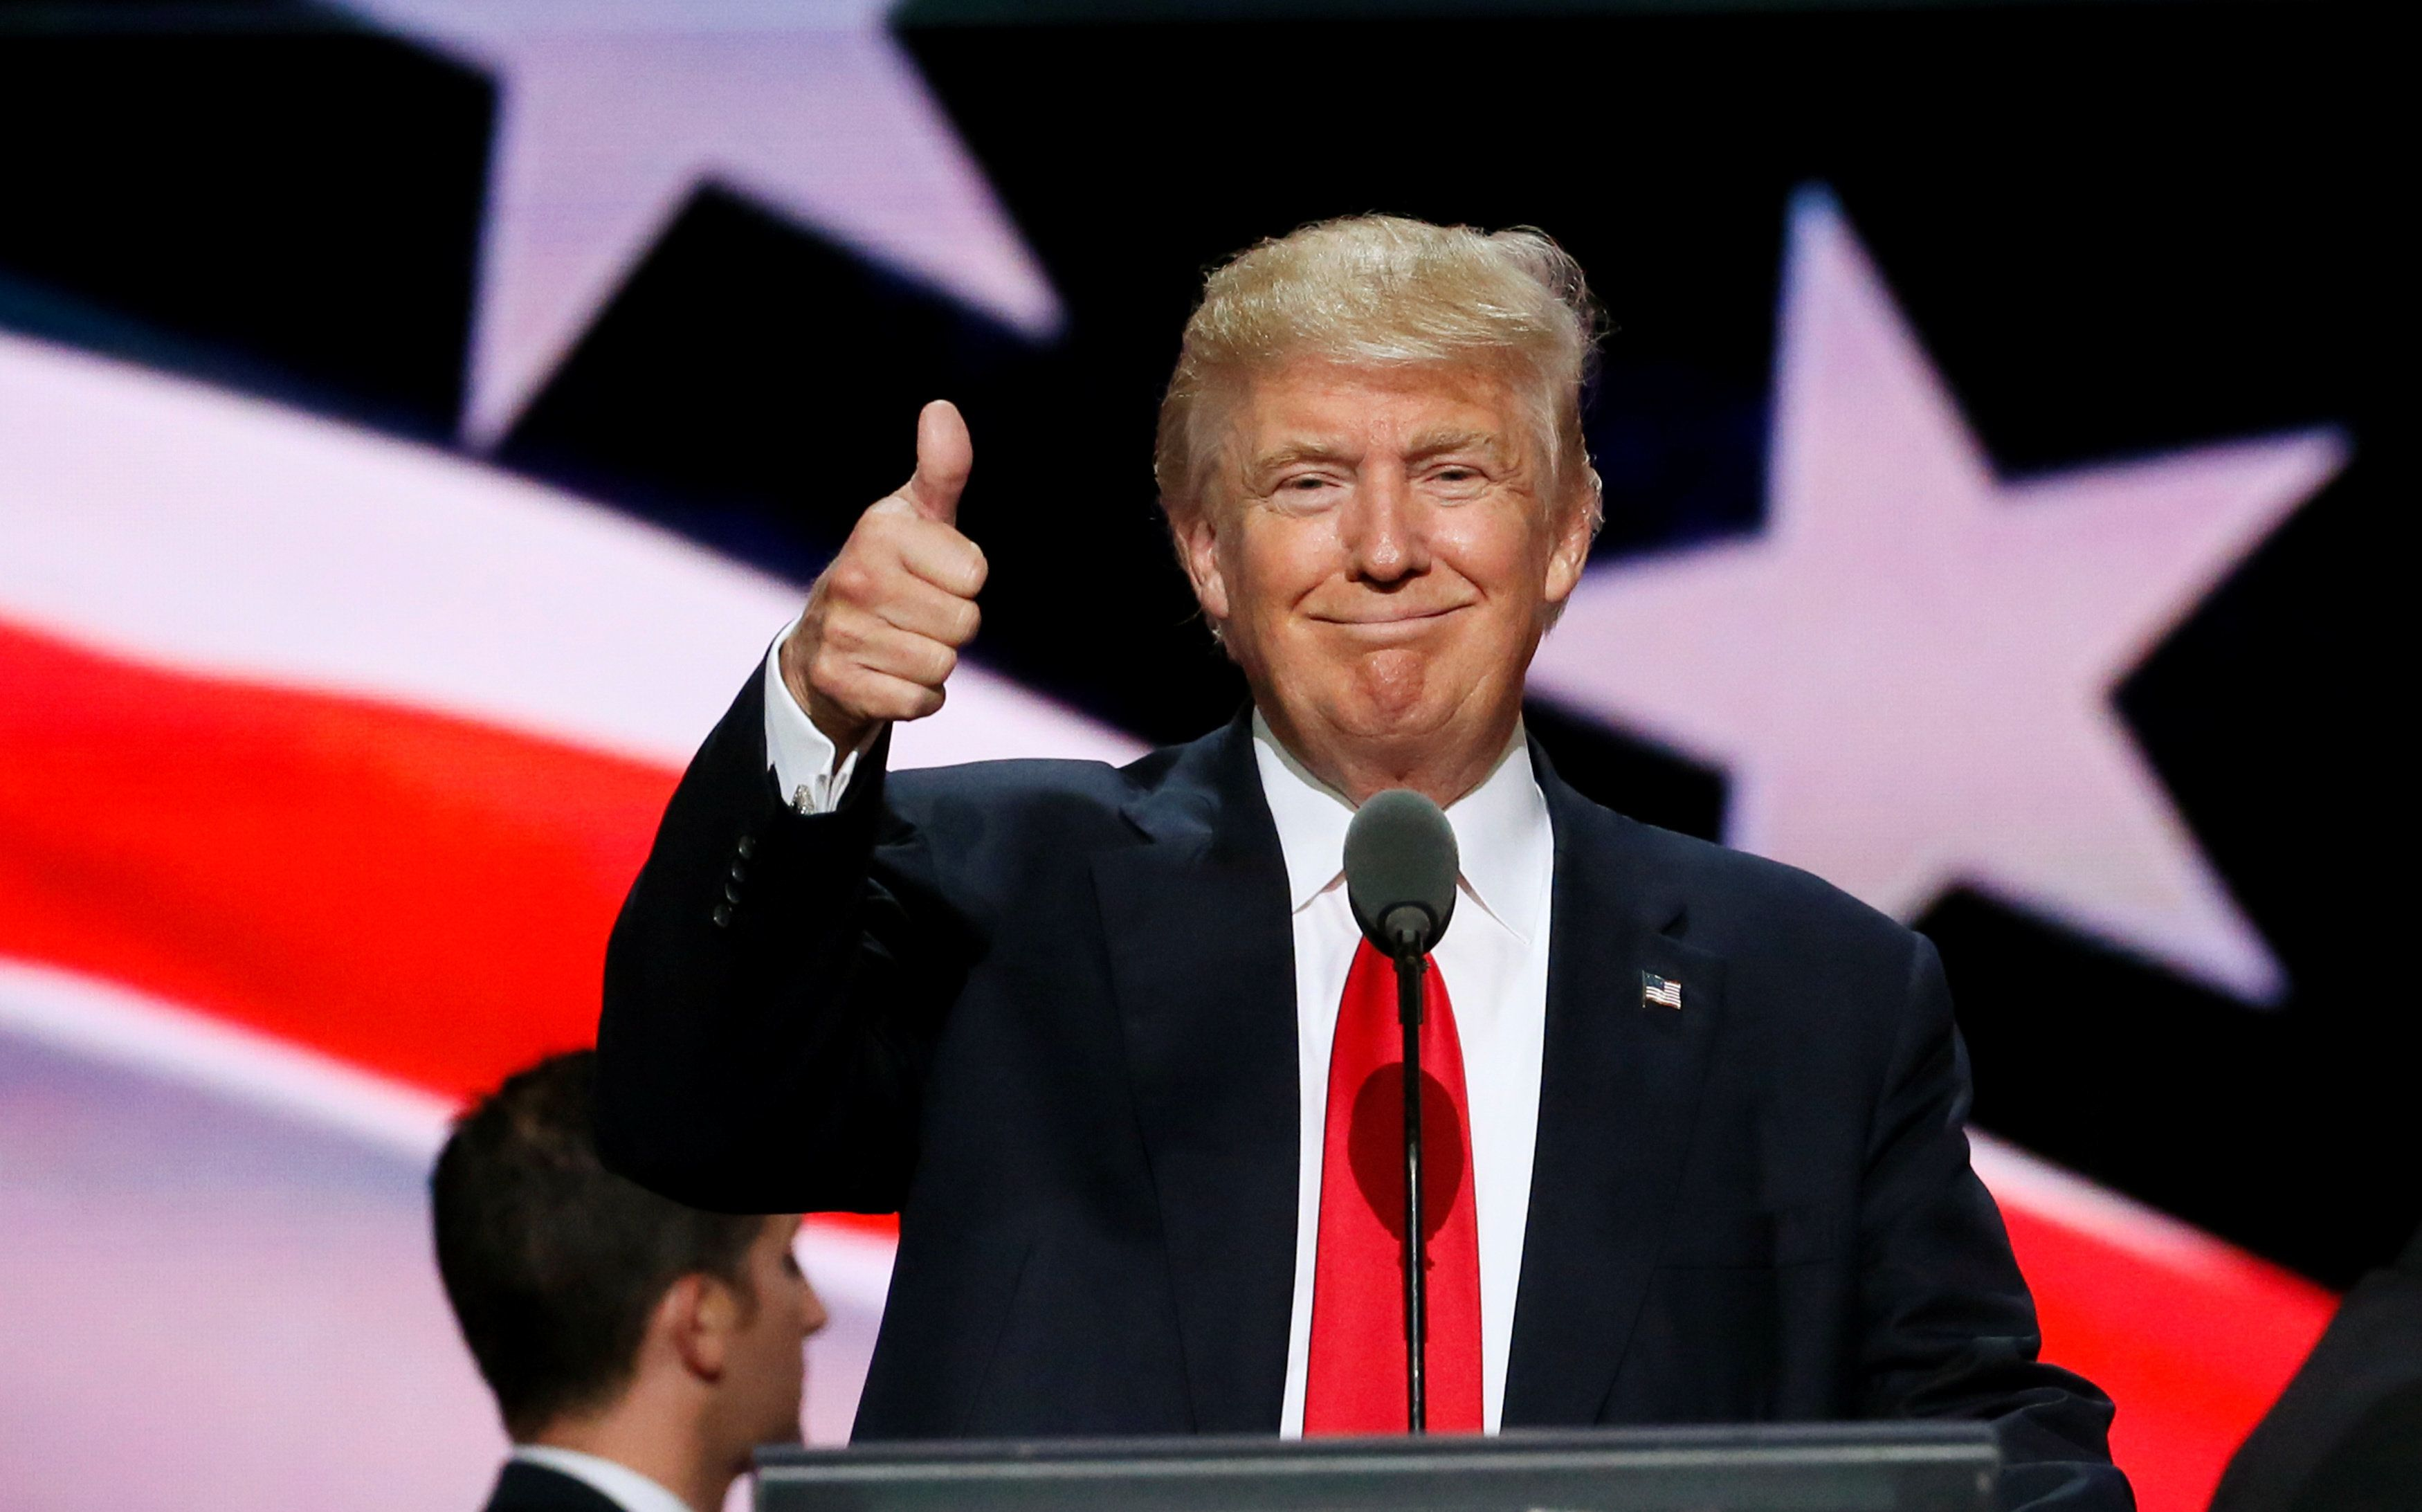 Republican presidential nominee Donald Trump gives a thumbs up during his walk through at the Republican National Convention in Cleveland, U.S., July 21, 2016.  REUTERS/Rick Wilking